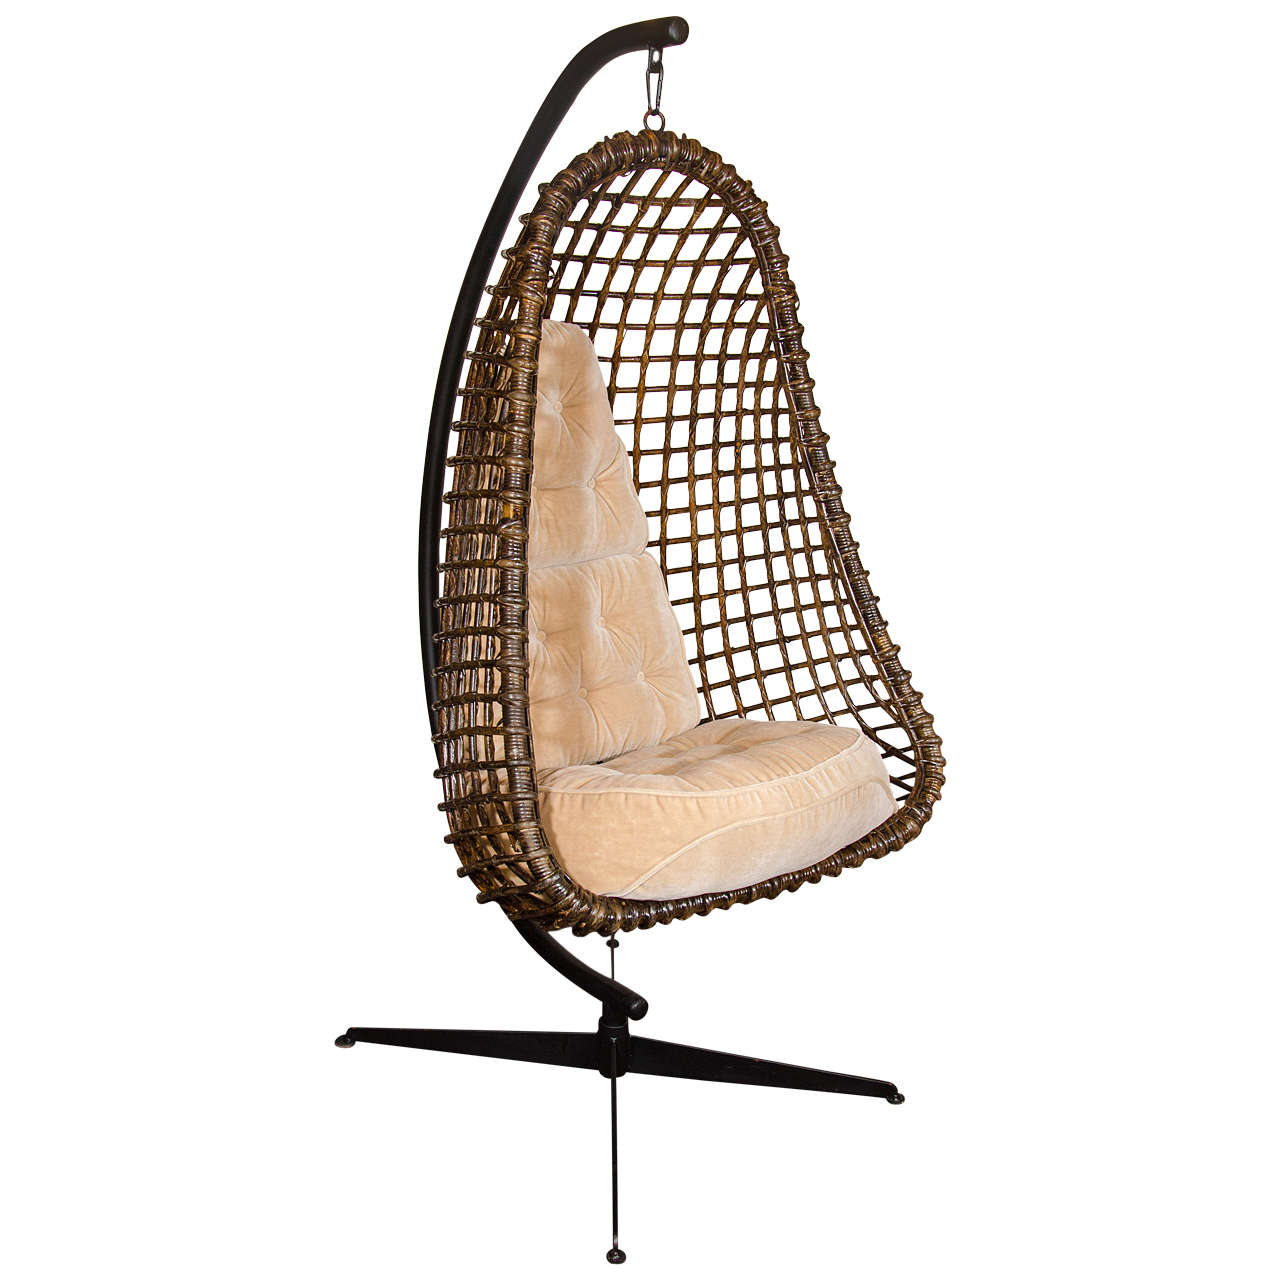 Rare Outstanding Mid Century Modern Hanging Cocoon Chair For Sale